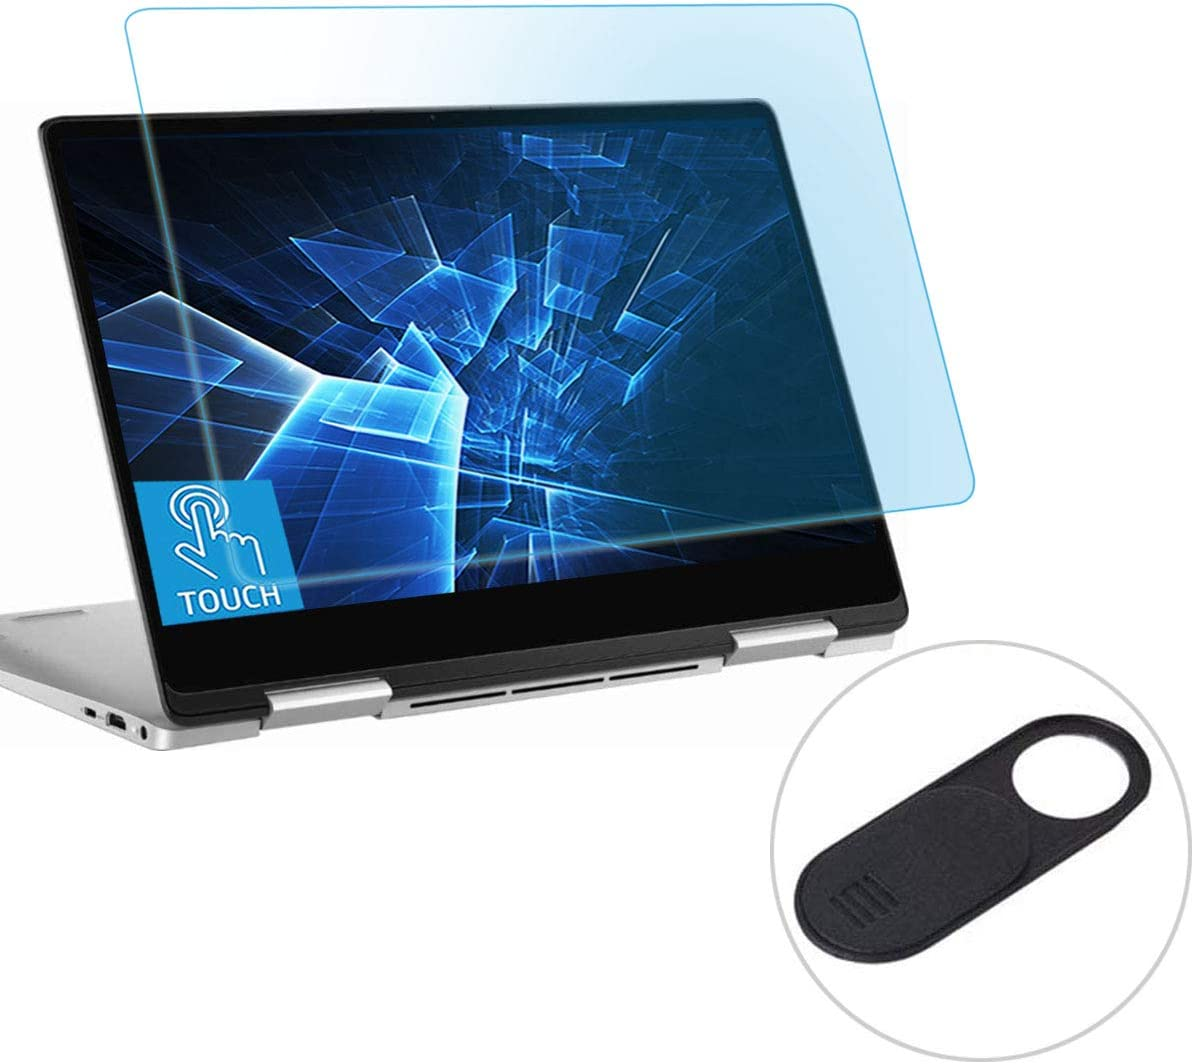 "Eyes Protection Filter Fit Dell XPS 13 9365 9370 13.3"" Touch-Screen Laptop Anti Blue Light Anti Glare Screen Protector, Eyes Protection Filter Block UV and Reduce Fingerprint"